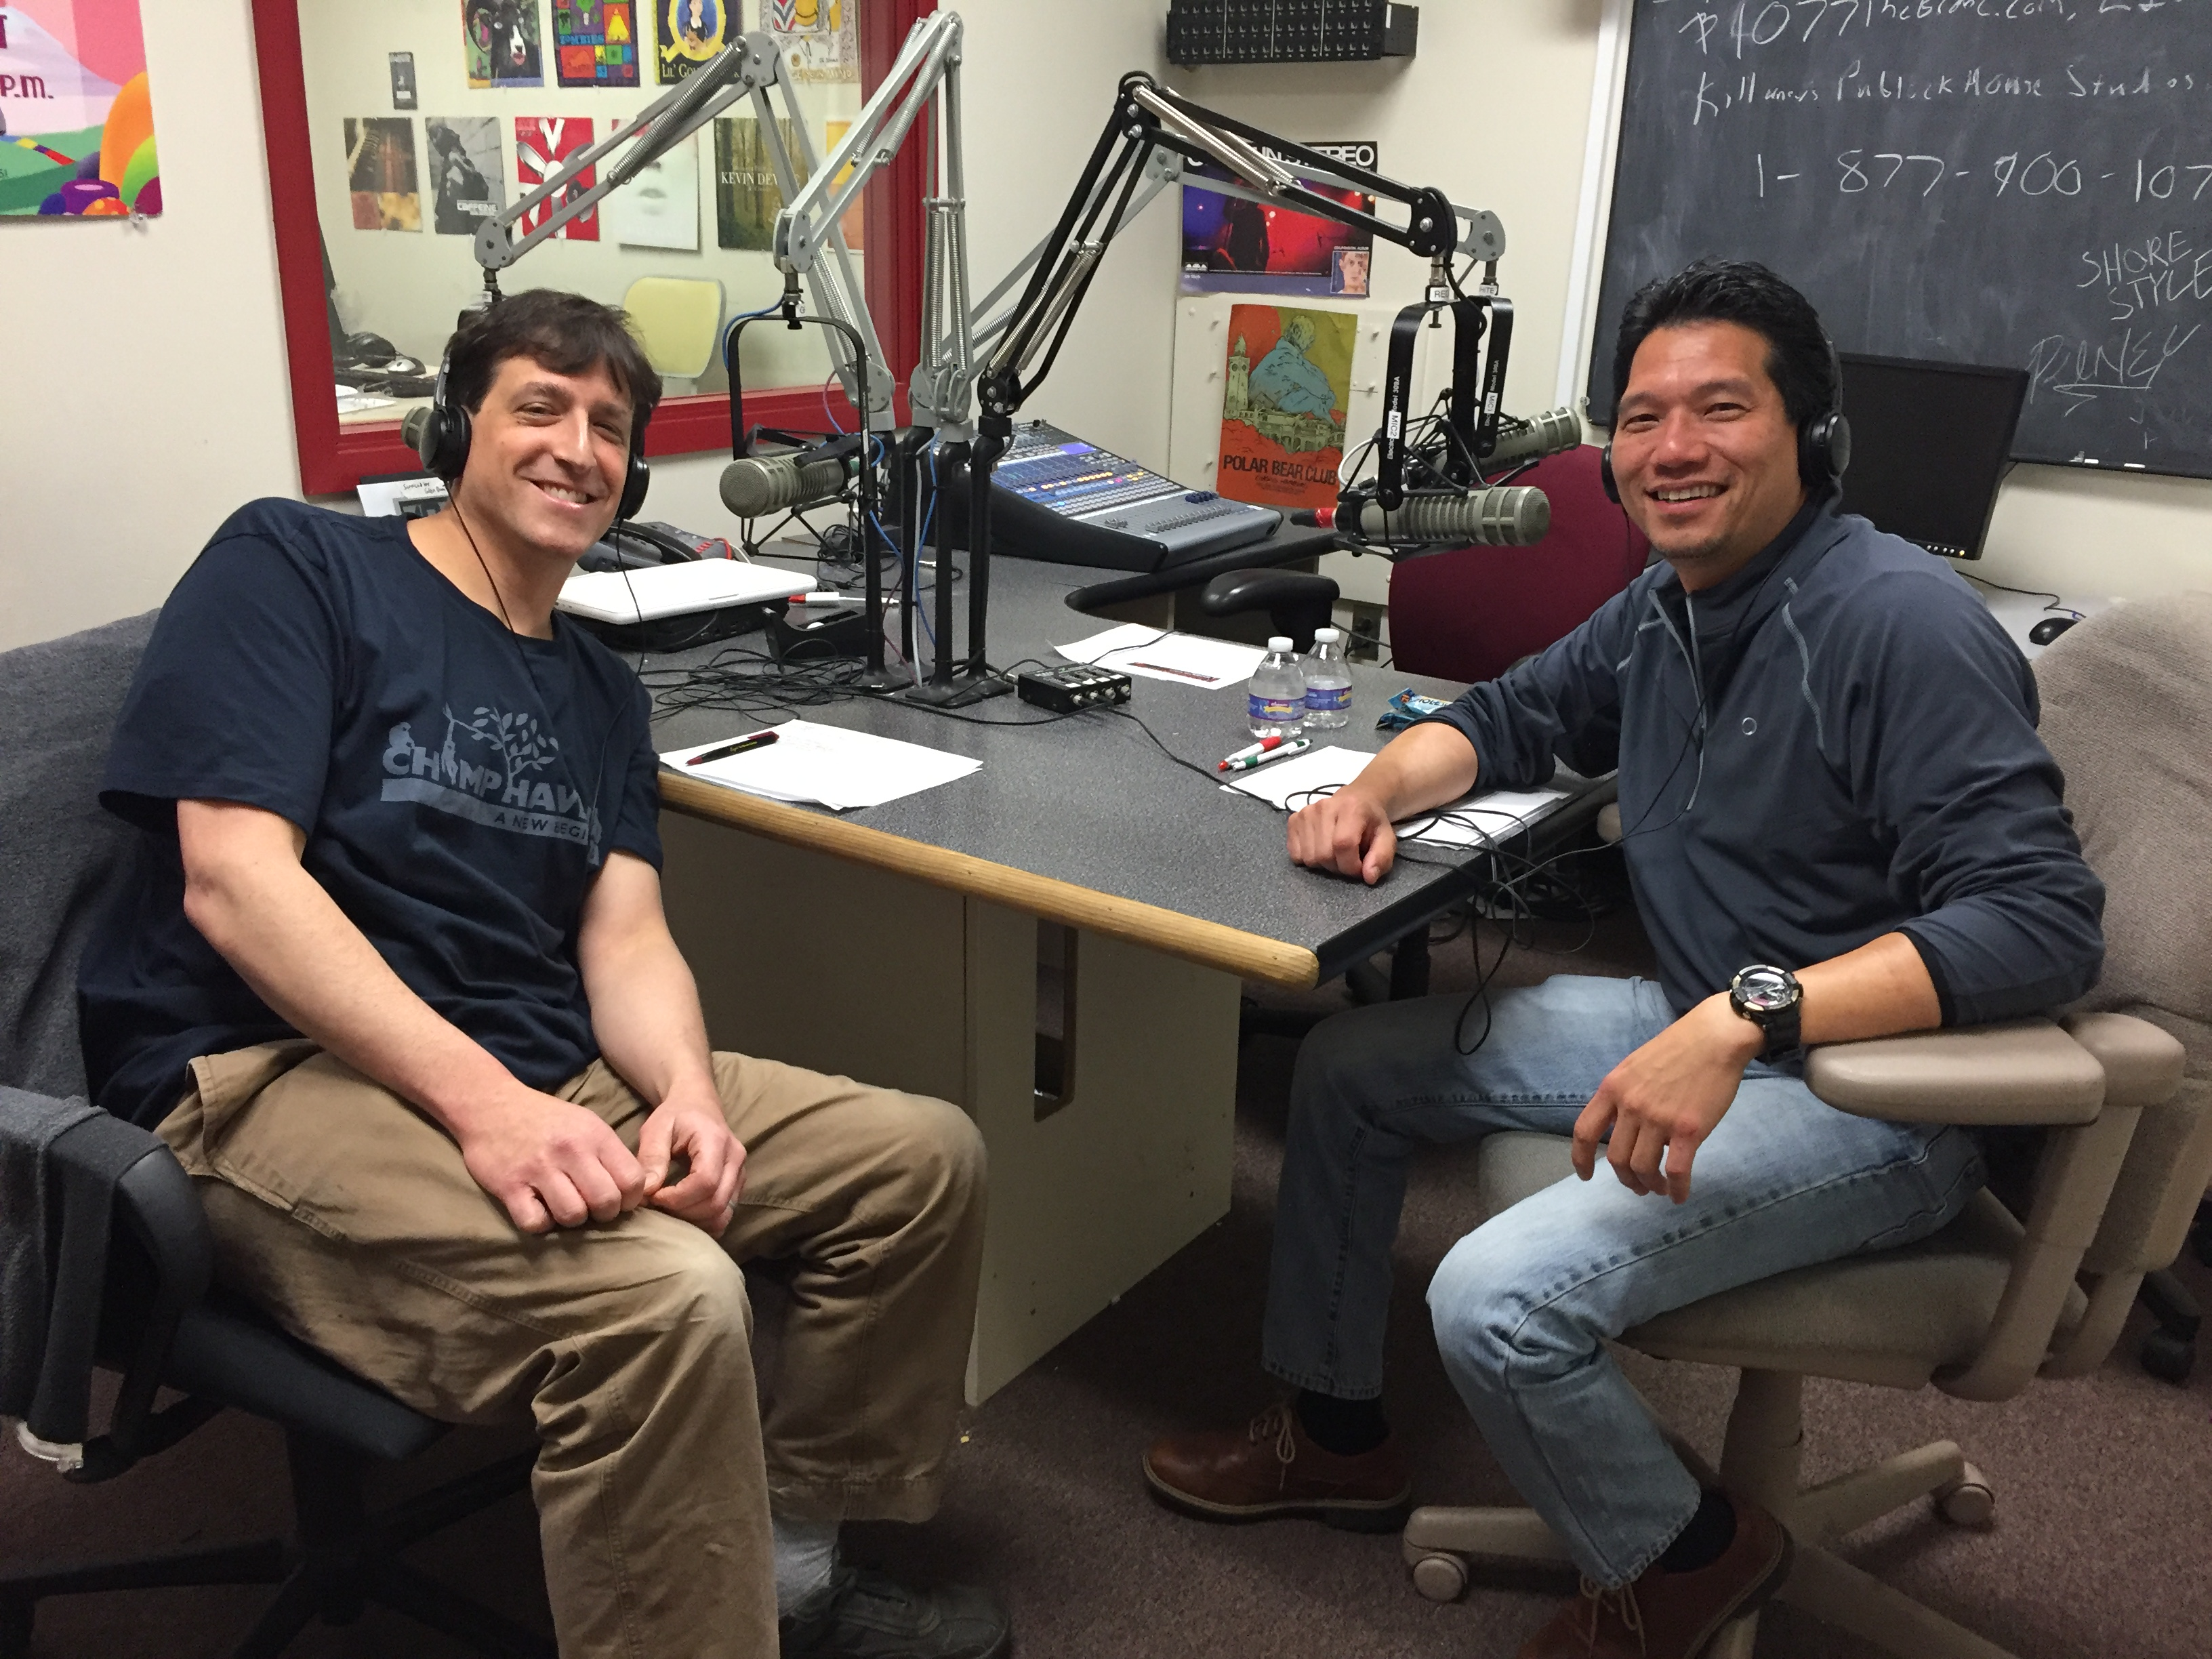 May 07, 2016 – Dr. Ian Spiegel, Veterinary Dermatologist and Dr. T broadcasting LIVE from our studio.